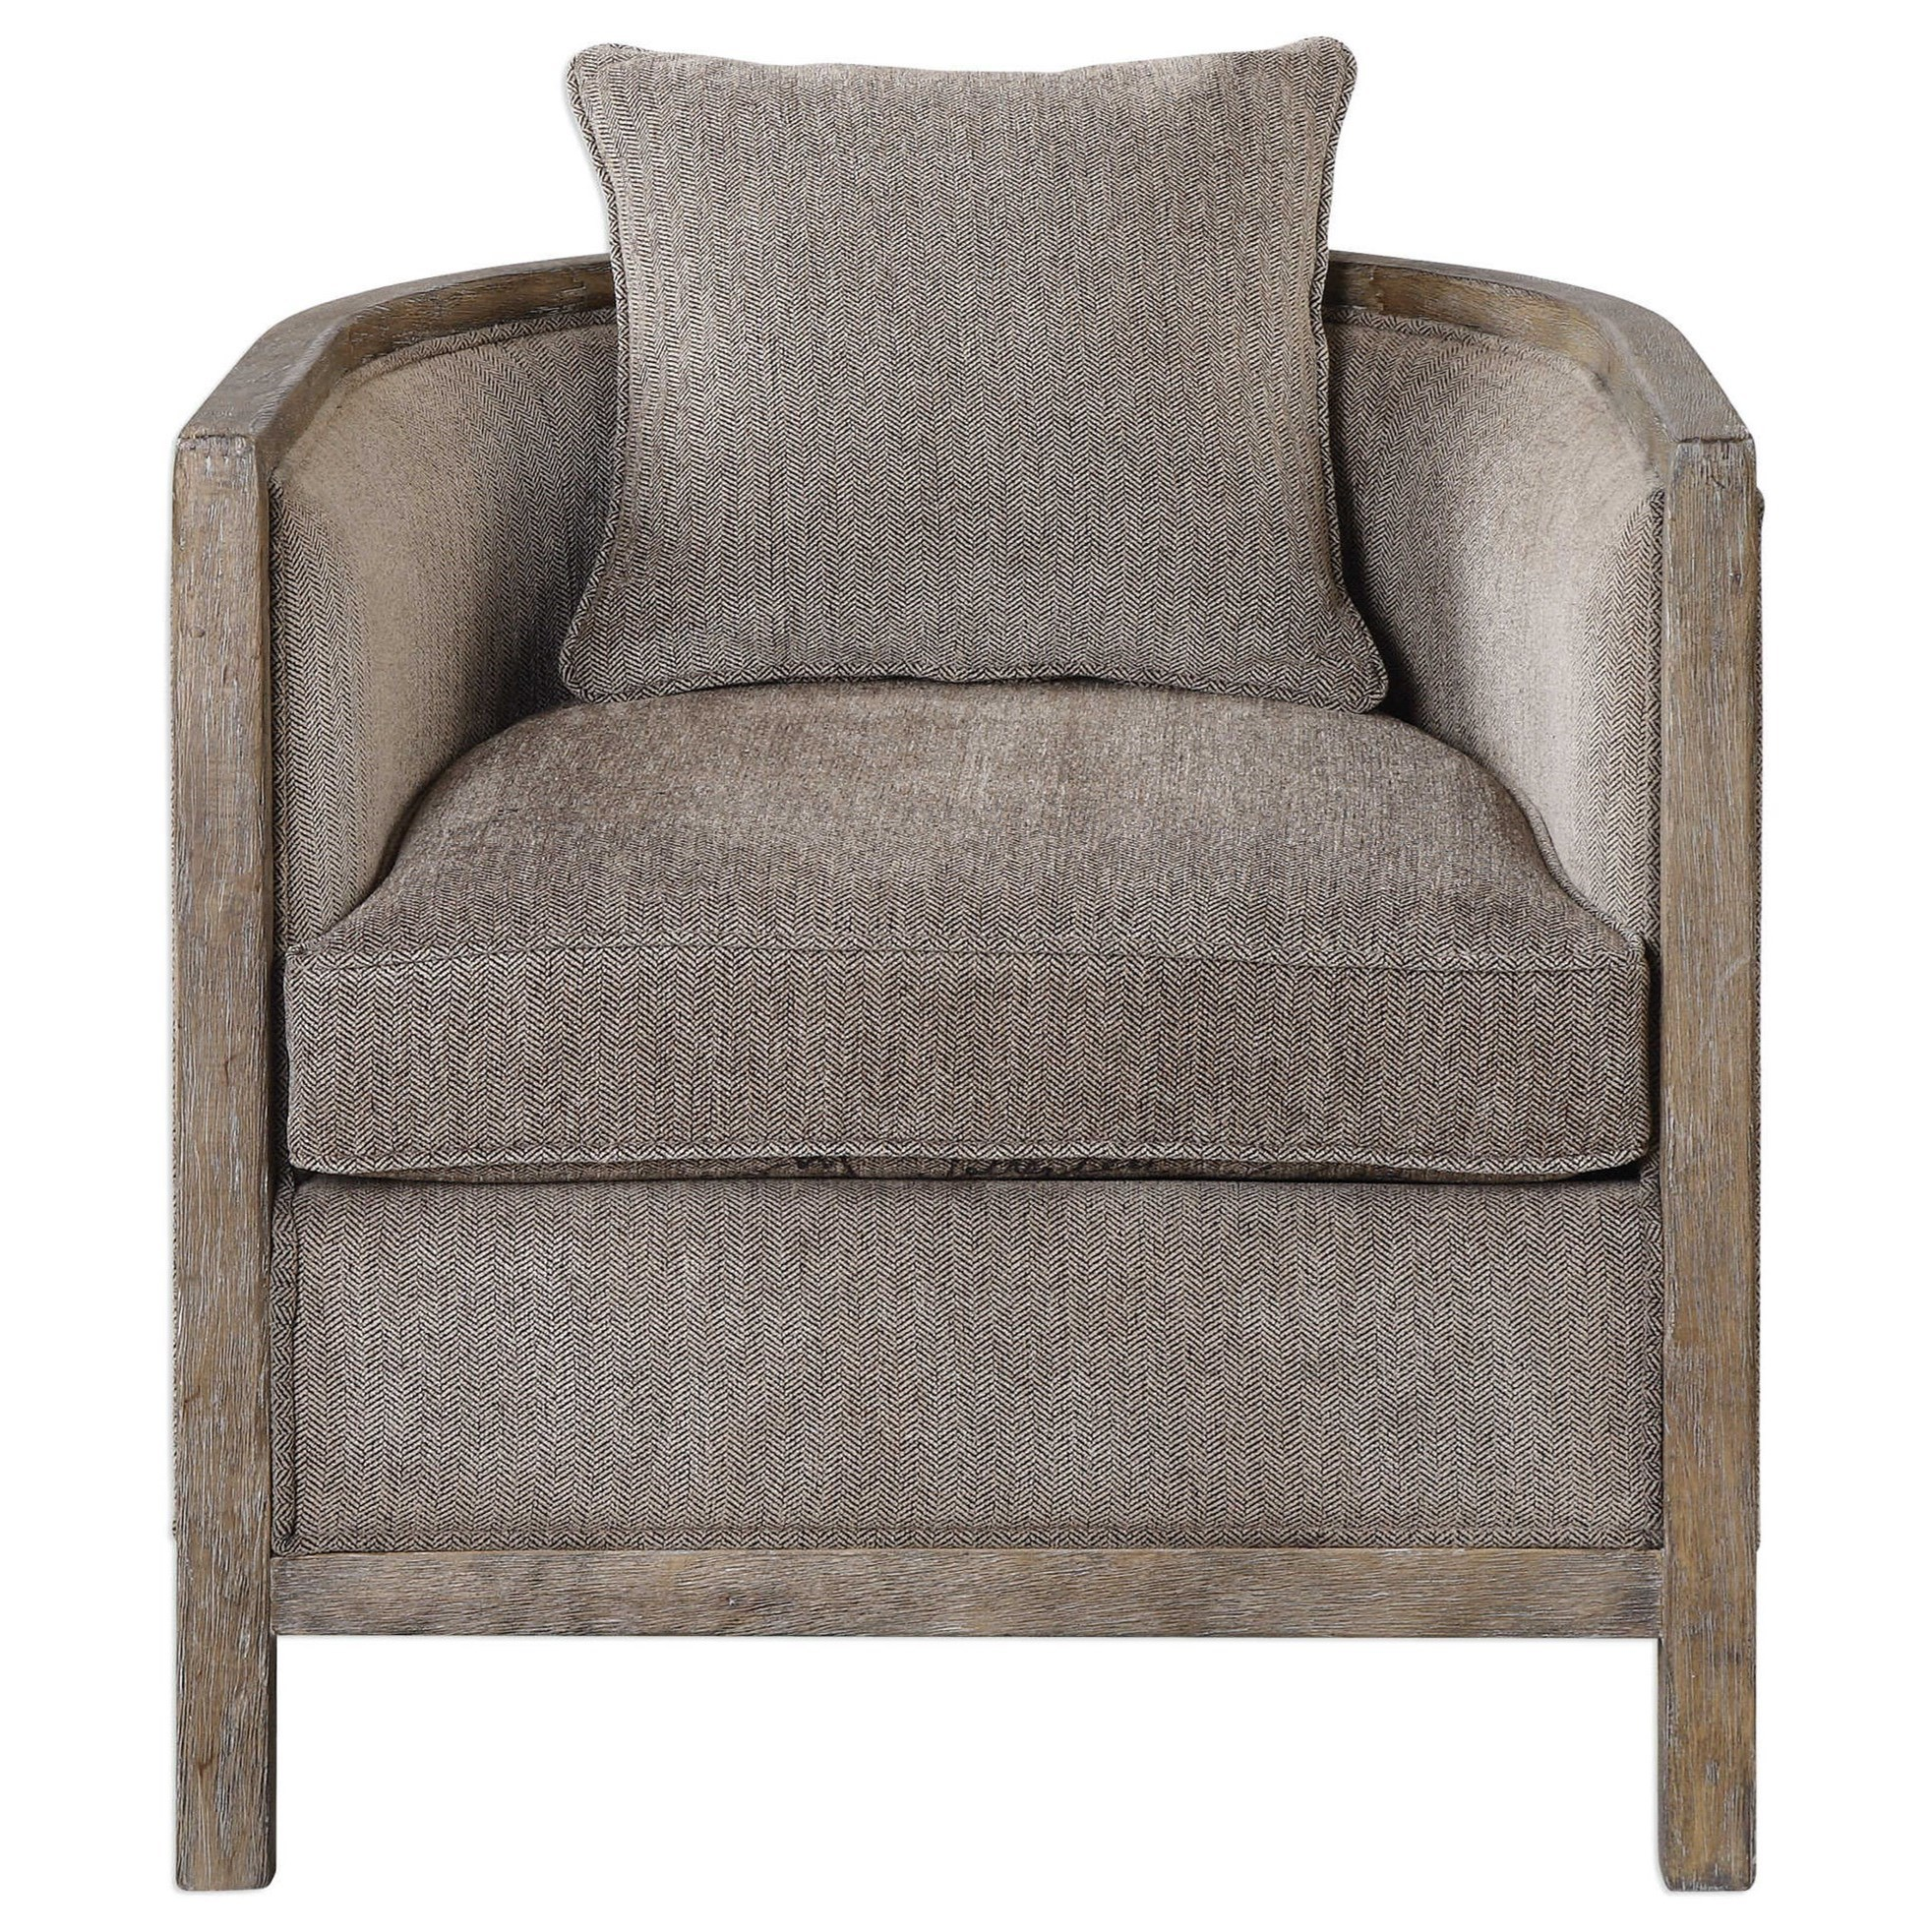 Uttermost Accent Furniture Viaggio Gray Chenille Accent Chair - Item Number: 23359